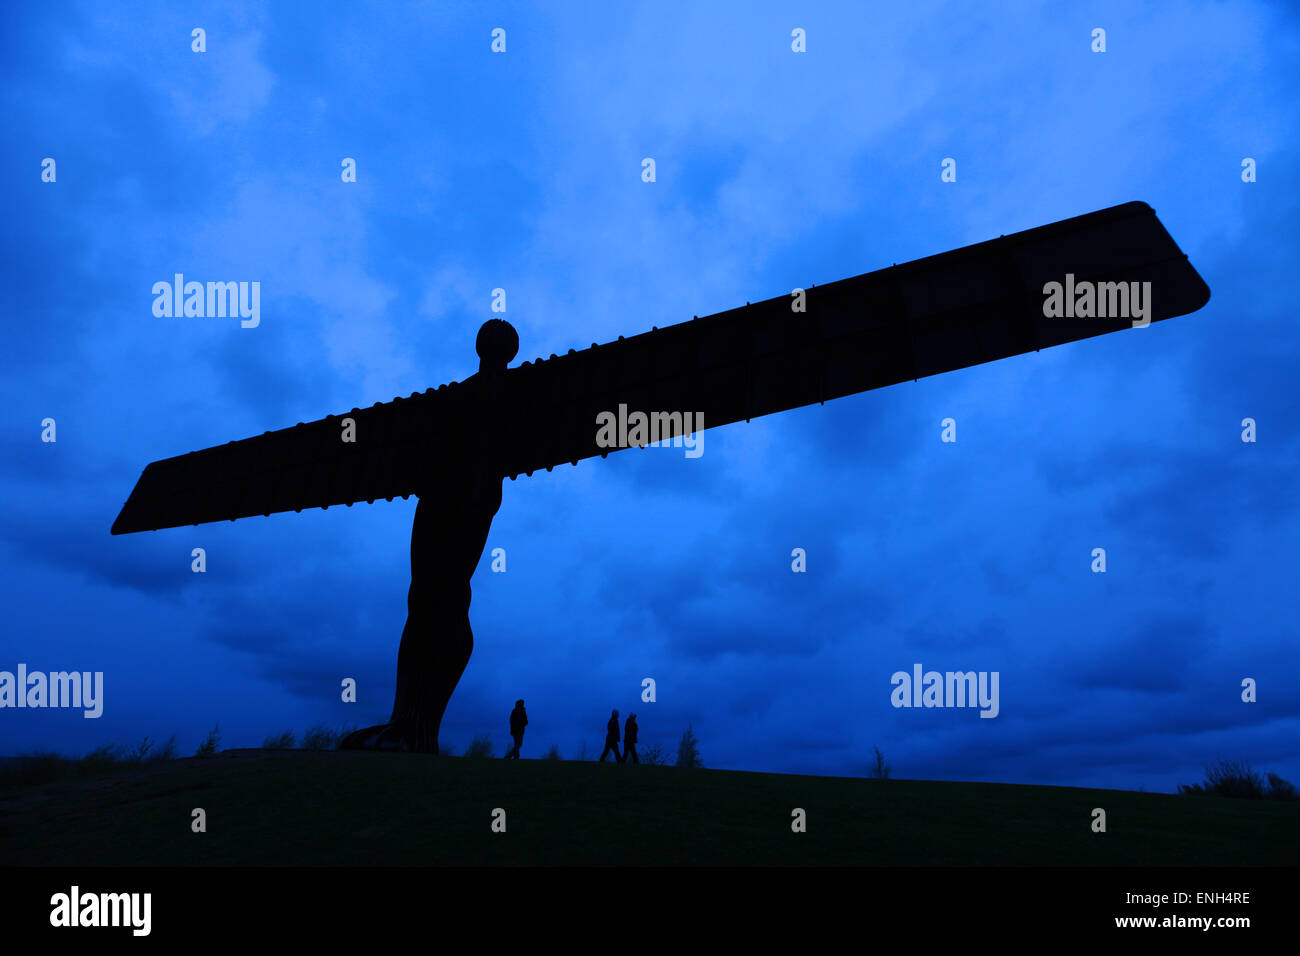 Angel of the North sculpture in Gateshead near Newcastle - Stock Image